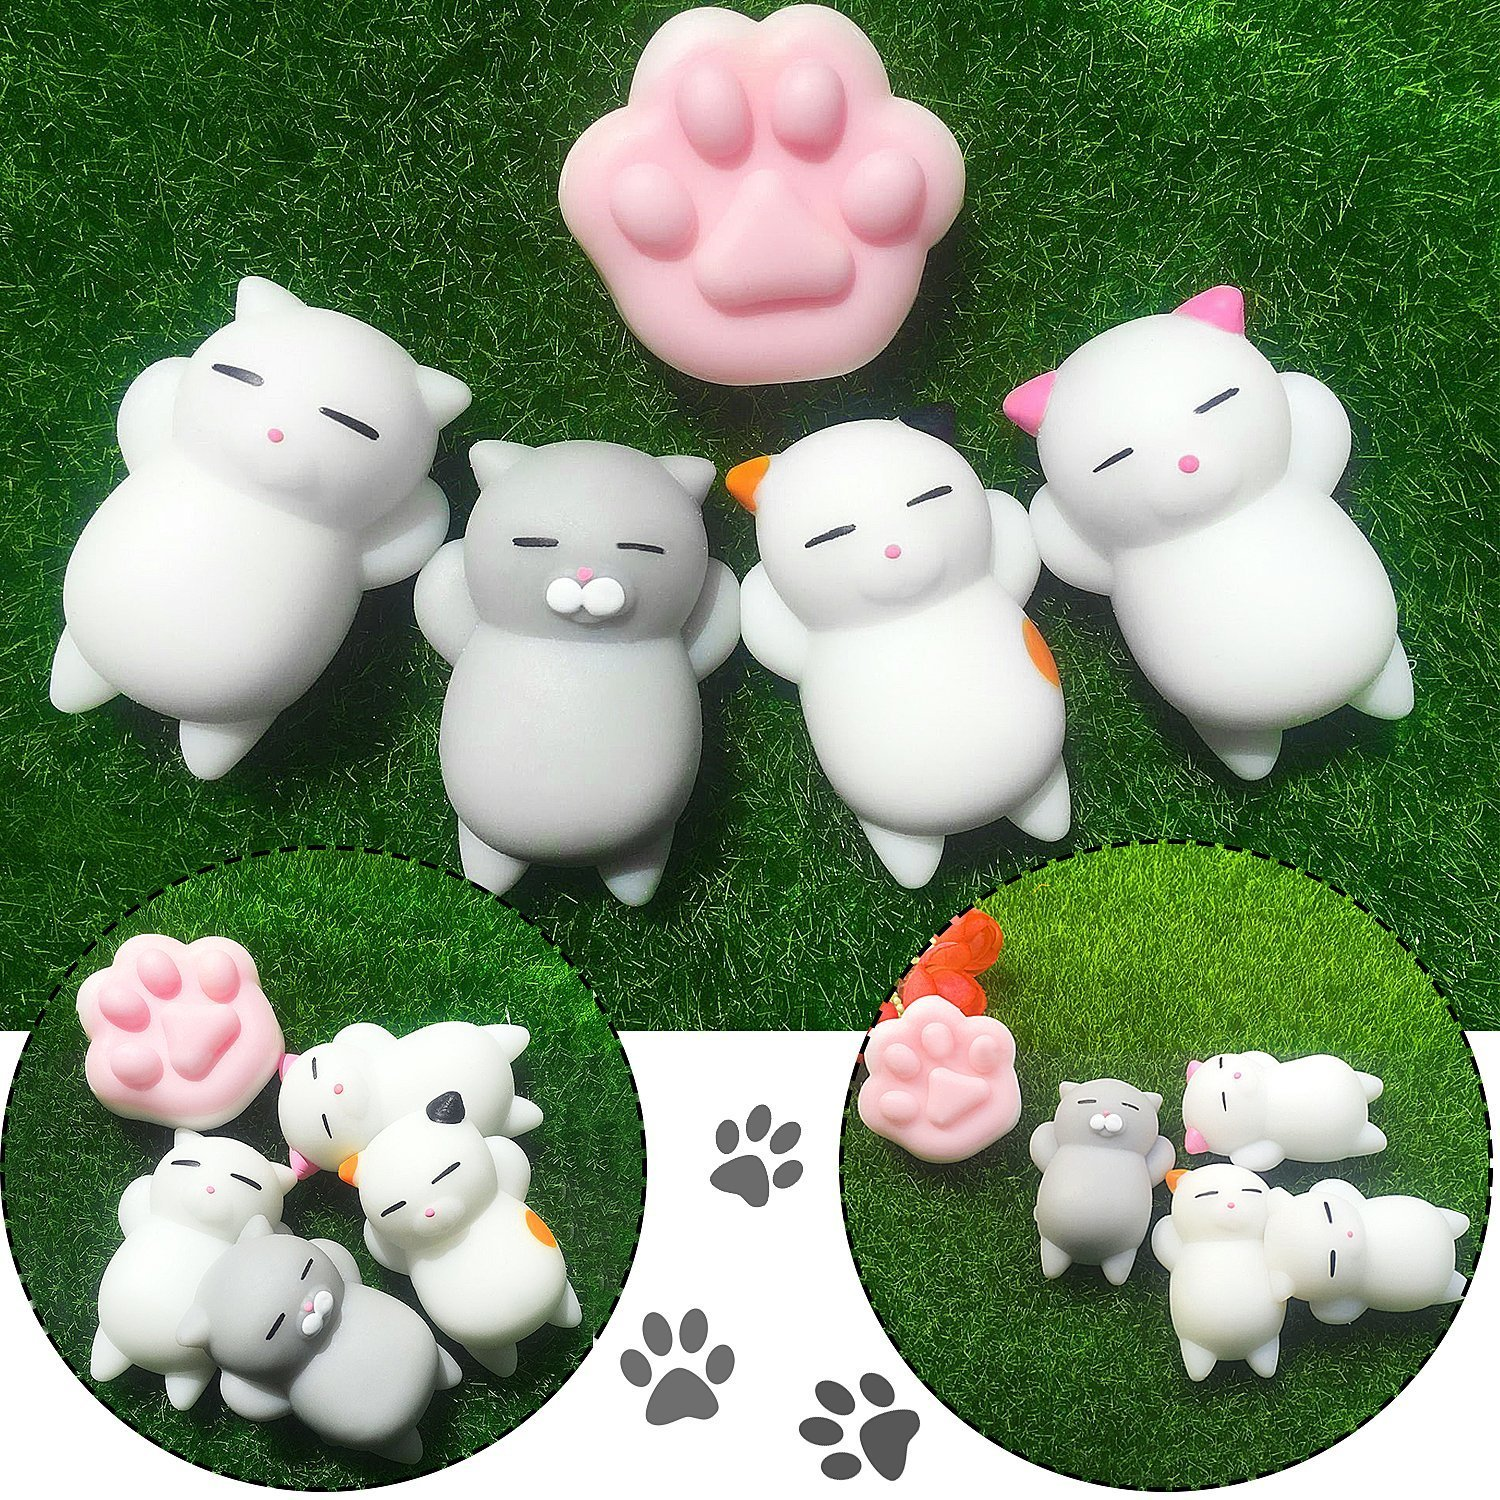 mini squishies kawaii  outee 16 pcs mochi animals squishy toys kawaii squishies mochi squishy